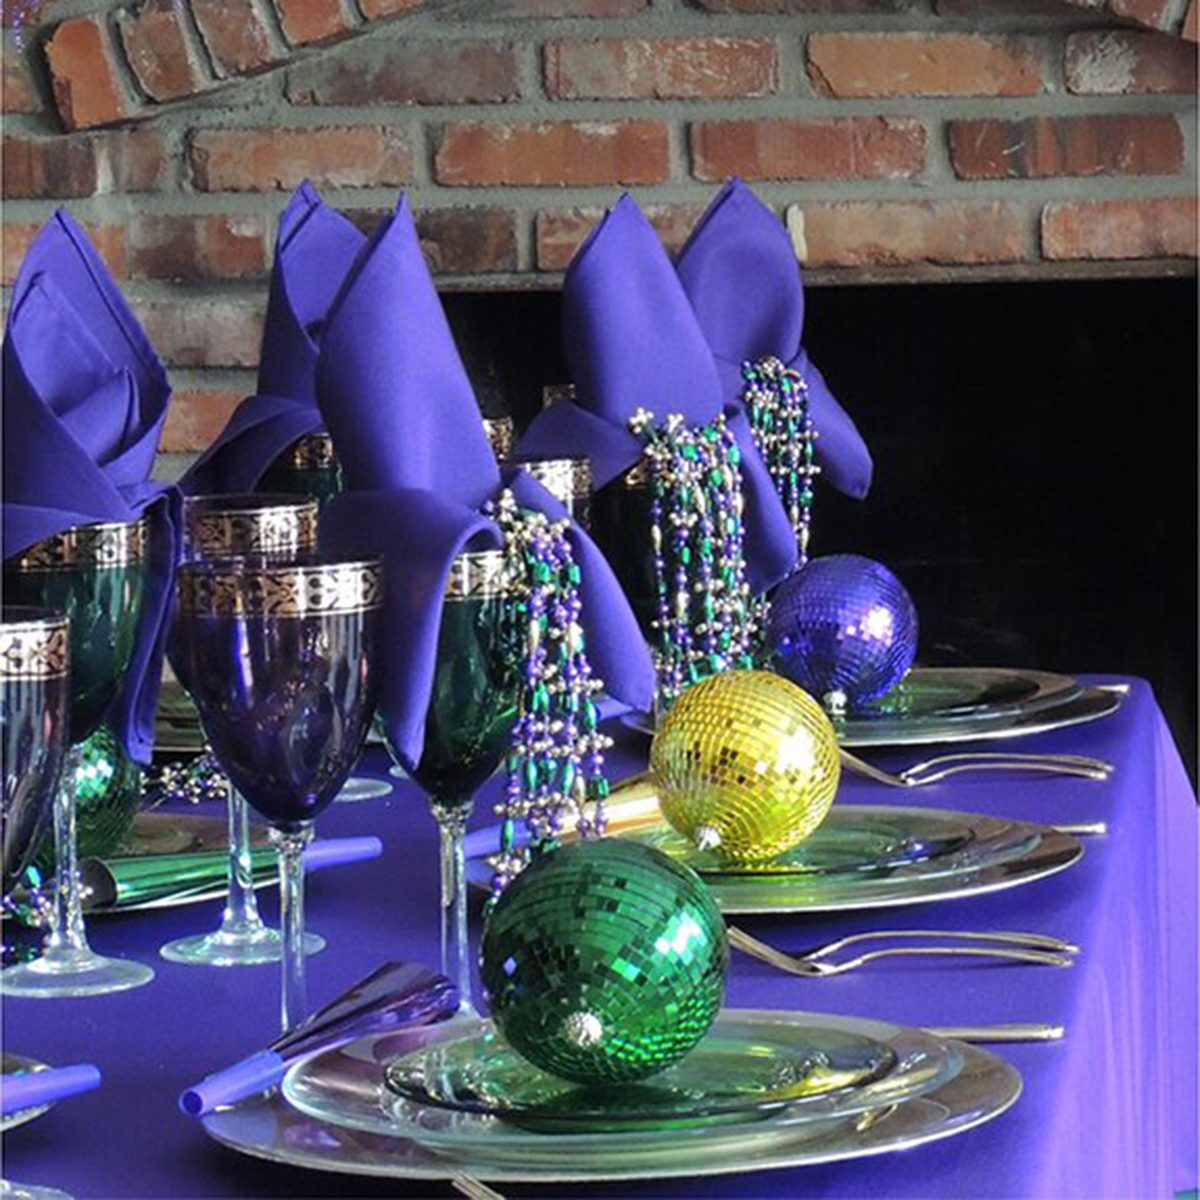 10 Fun Centerpiece Ideas For Your Mardi Gras Party Taste Of Home